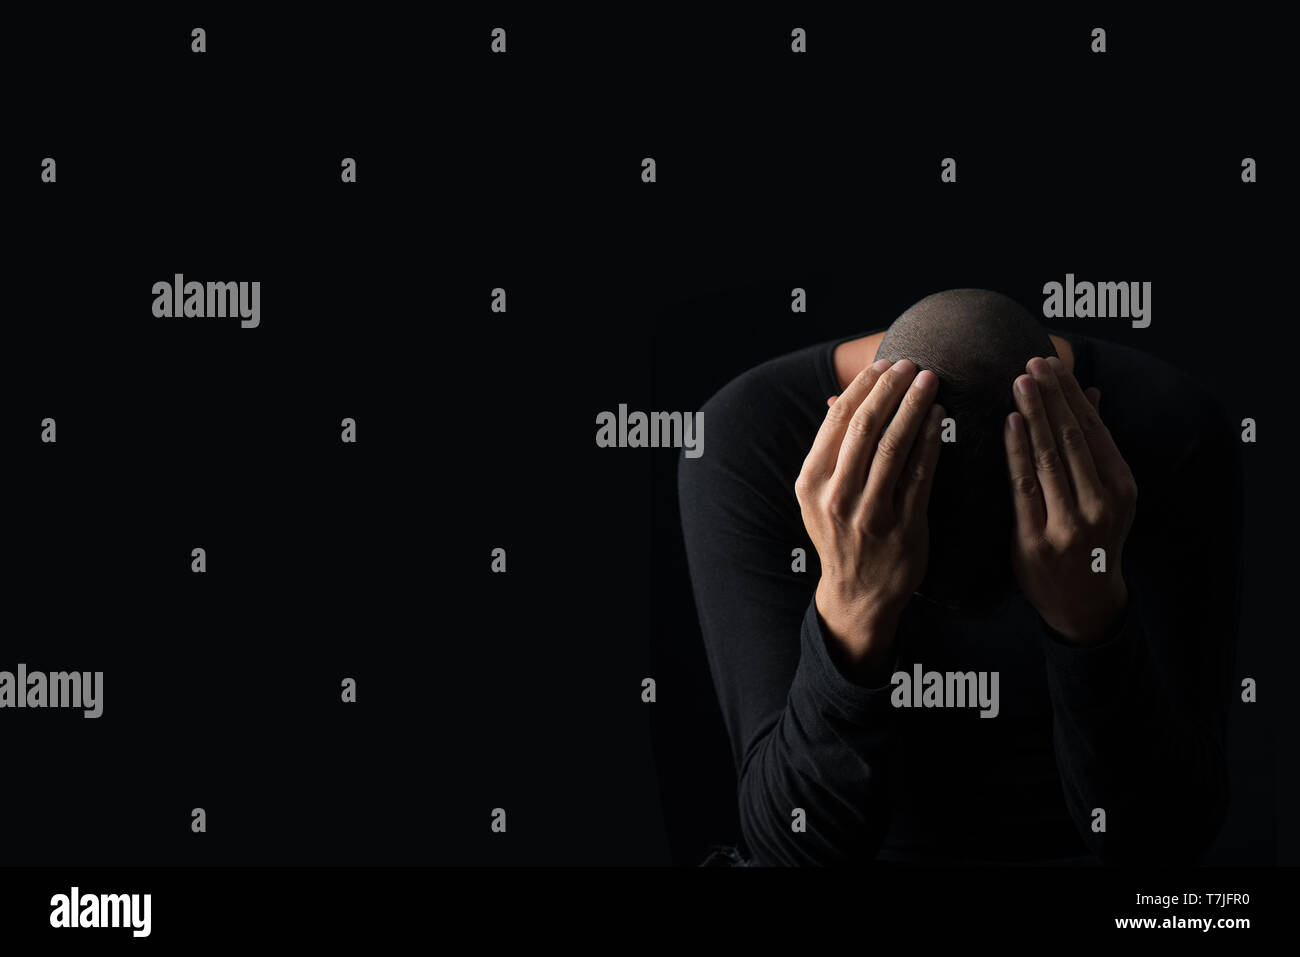 closeup of a desperate young caucasian man with his hands in his head, against a black background, with some blank space on the left - Stock Image